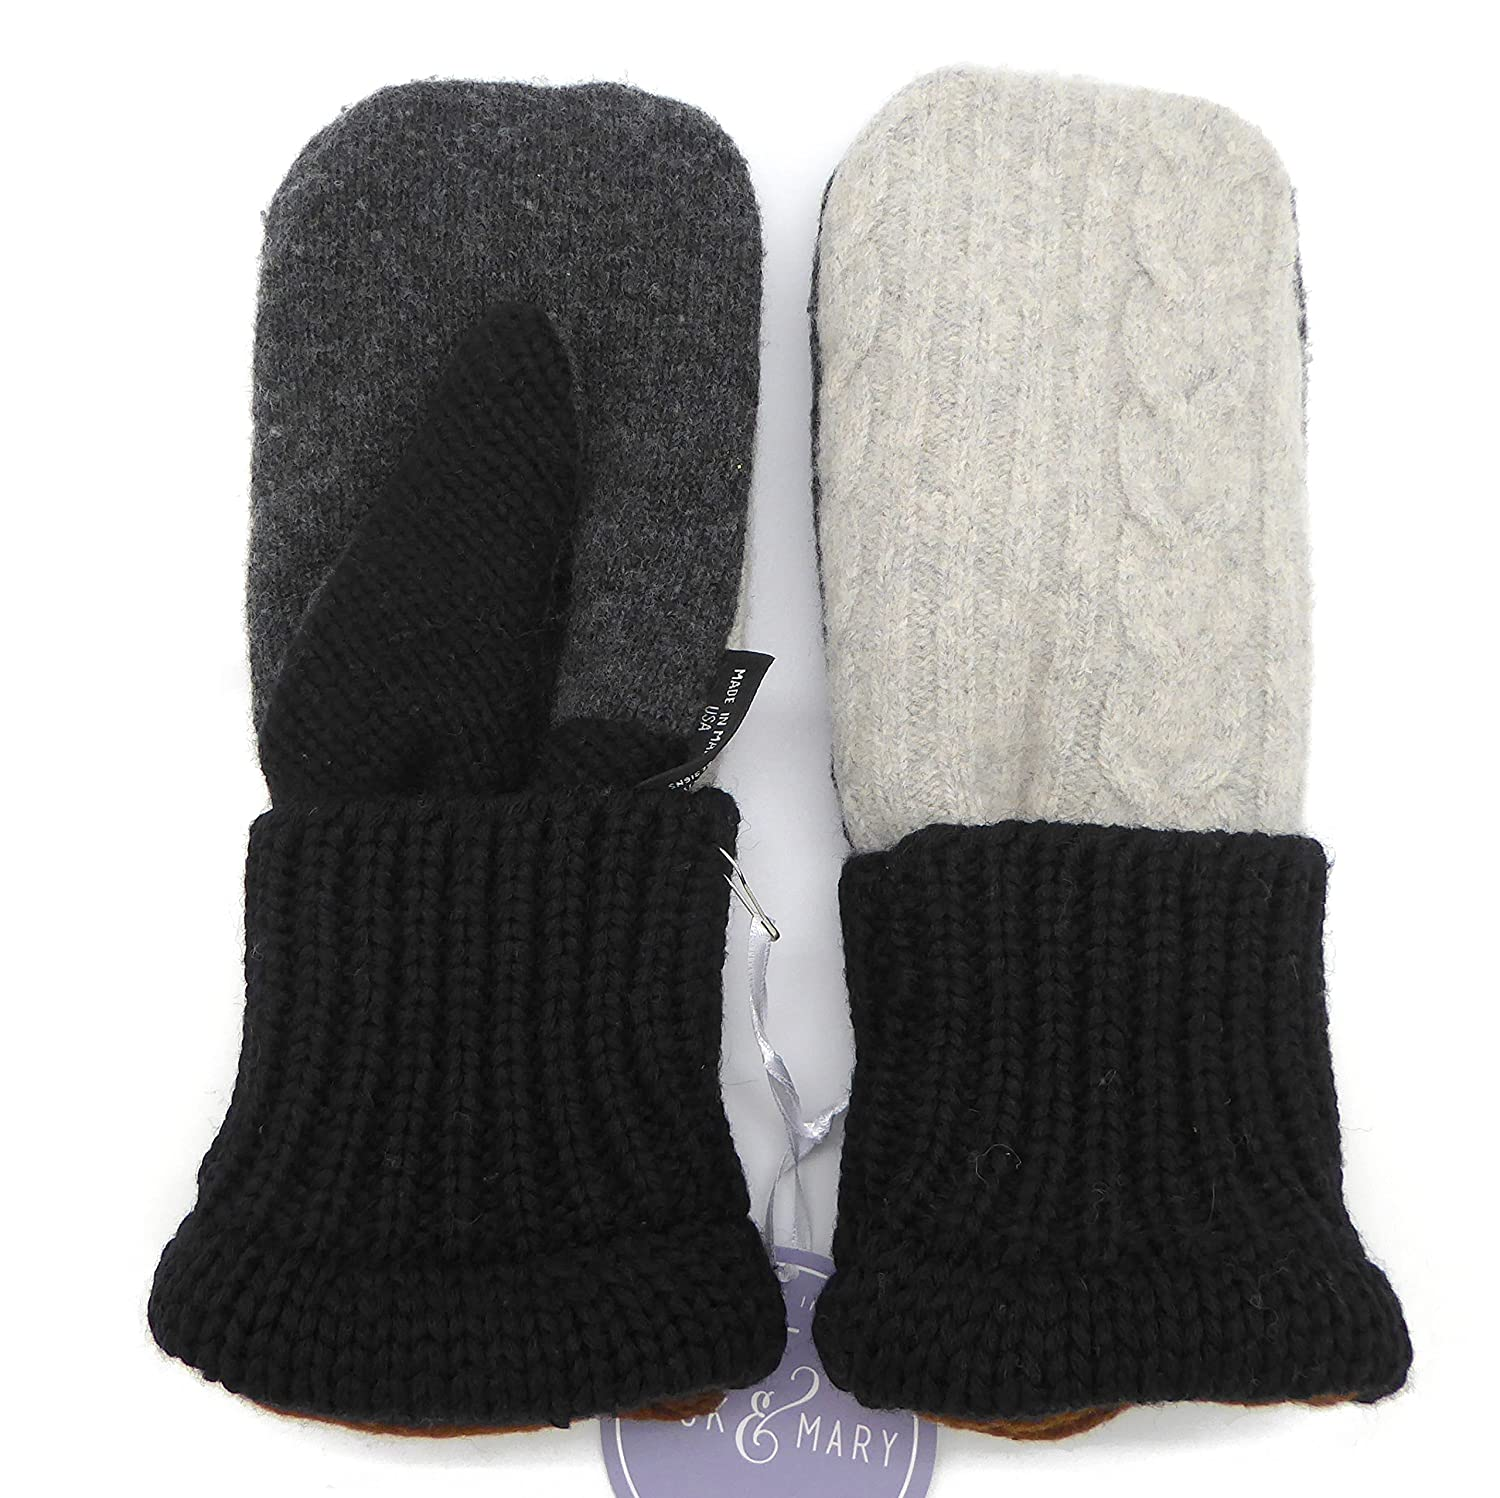 Jack Mary Designs Handmade Mens Fleece Lined Wool Mittens Made